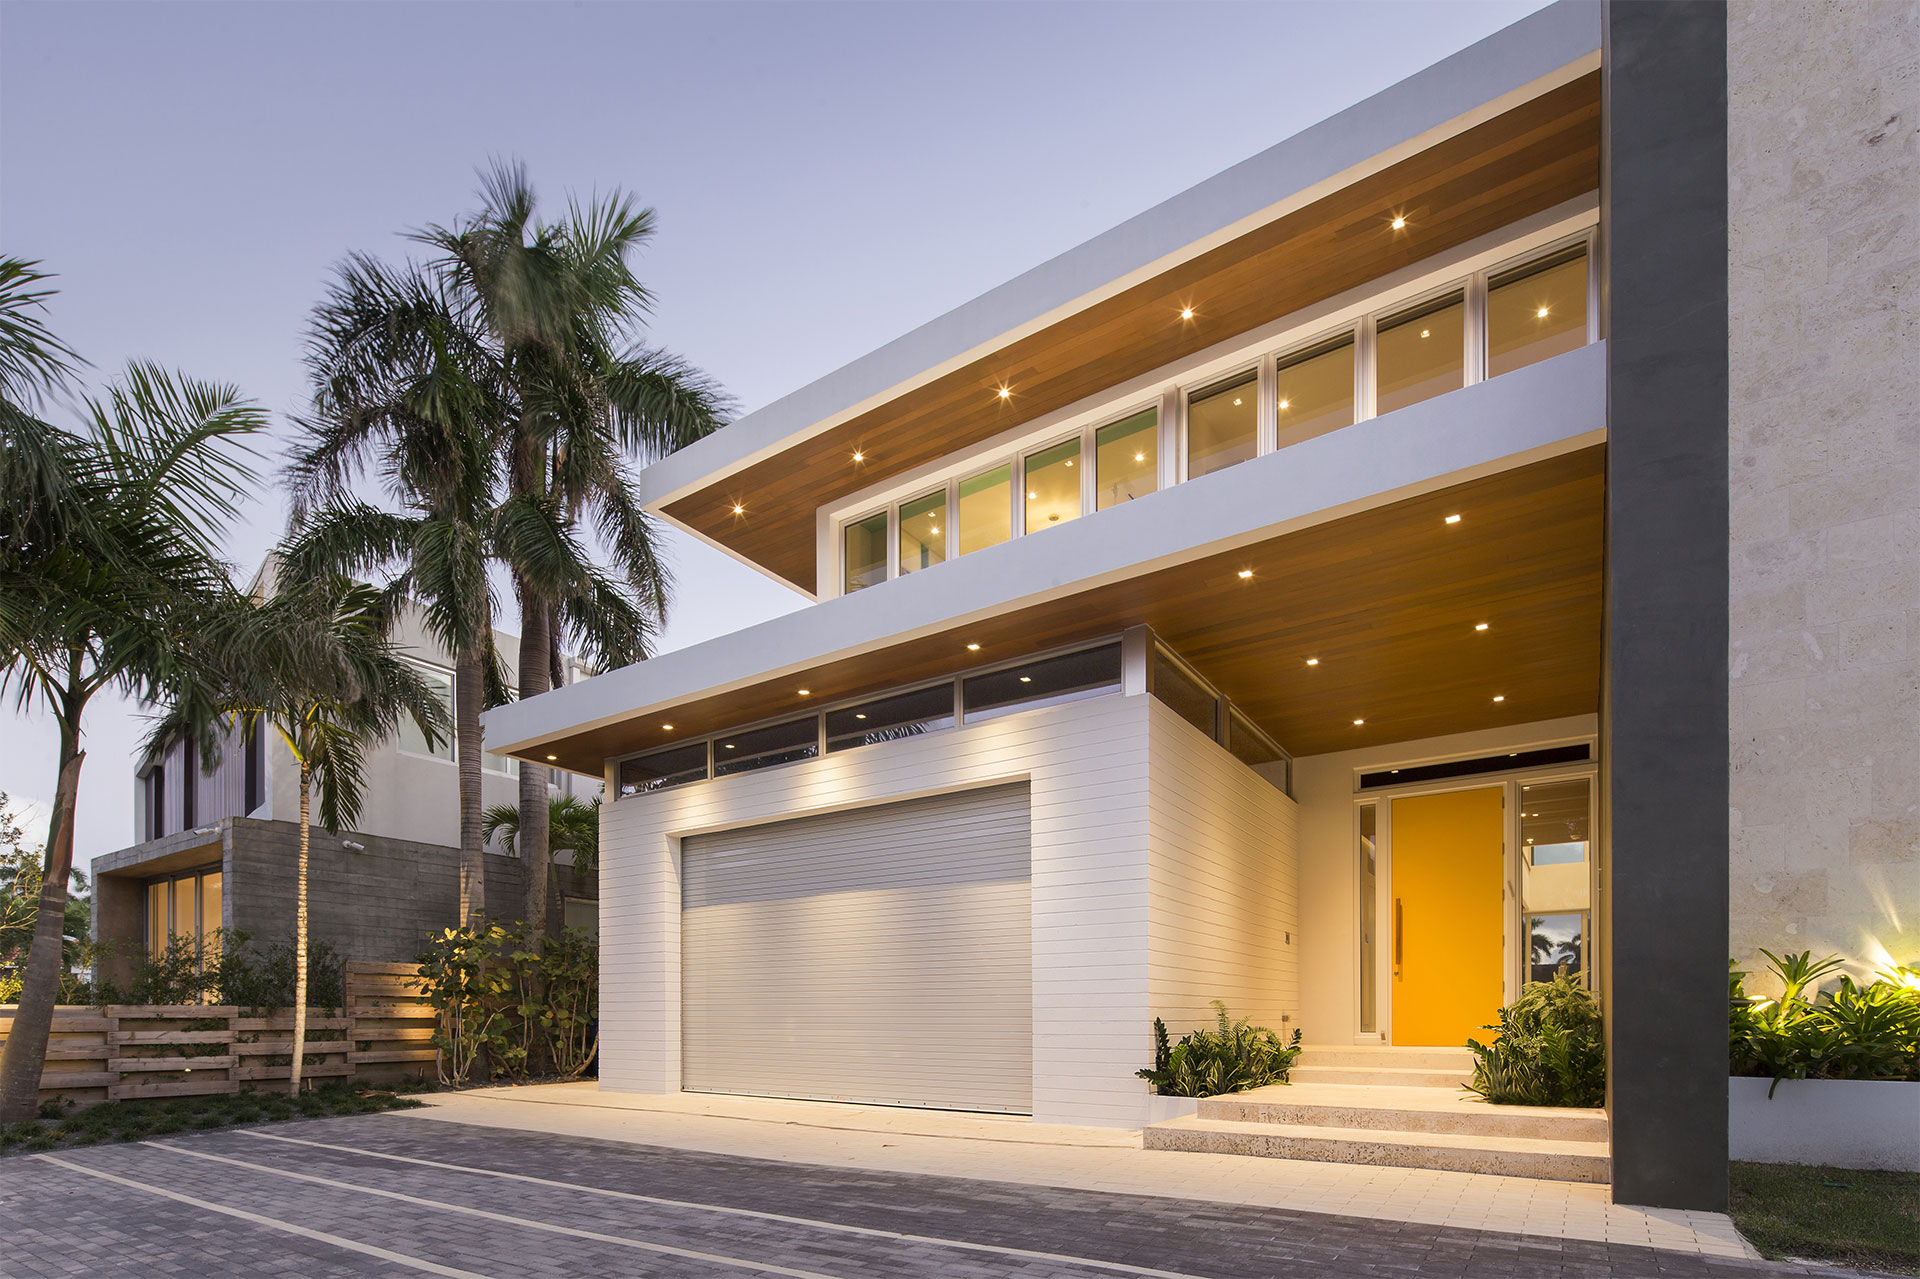 Front View Exterior Architecture project in 484 North Parkway, Florida